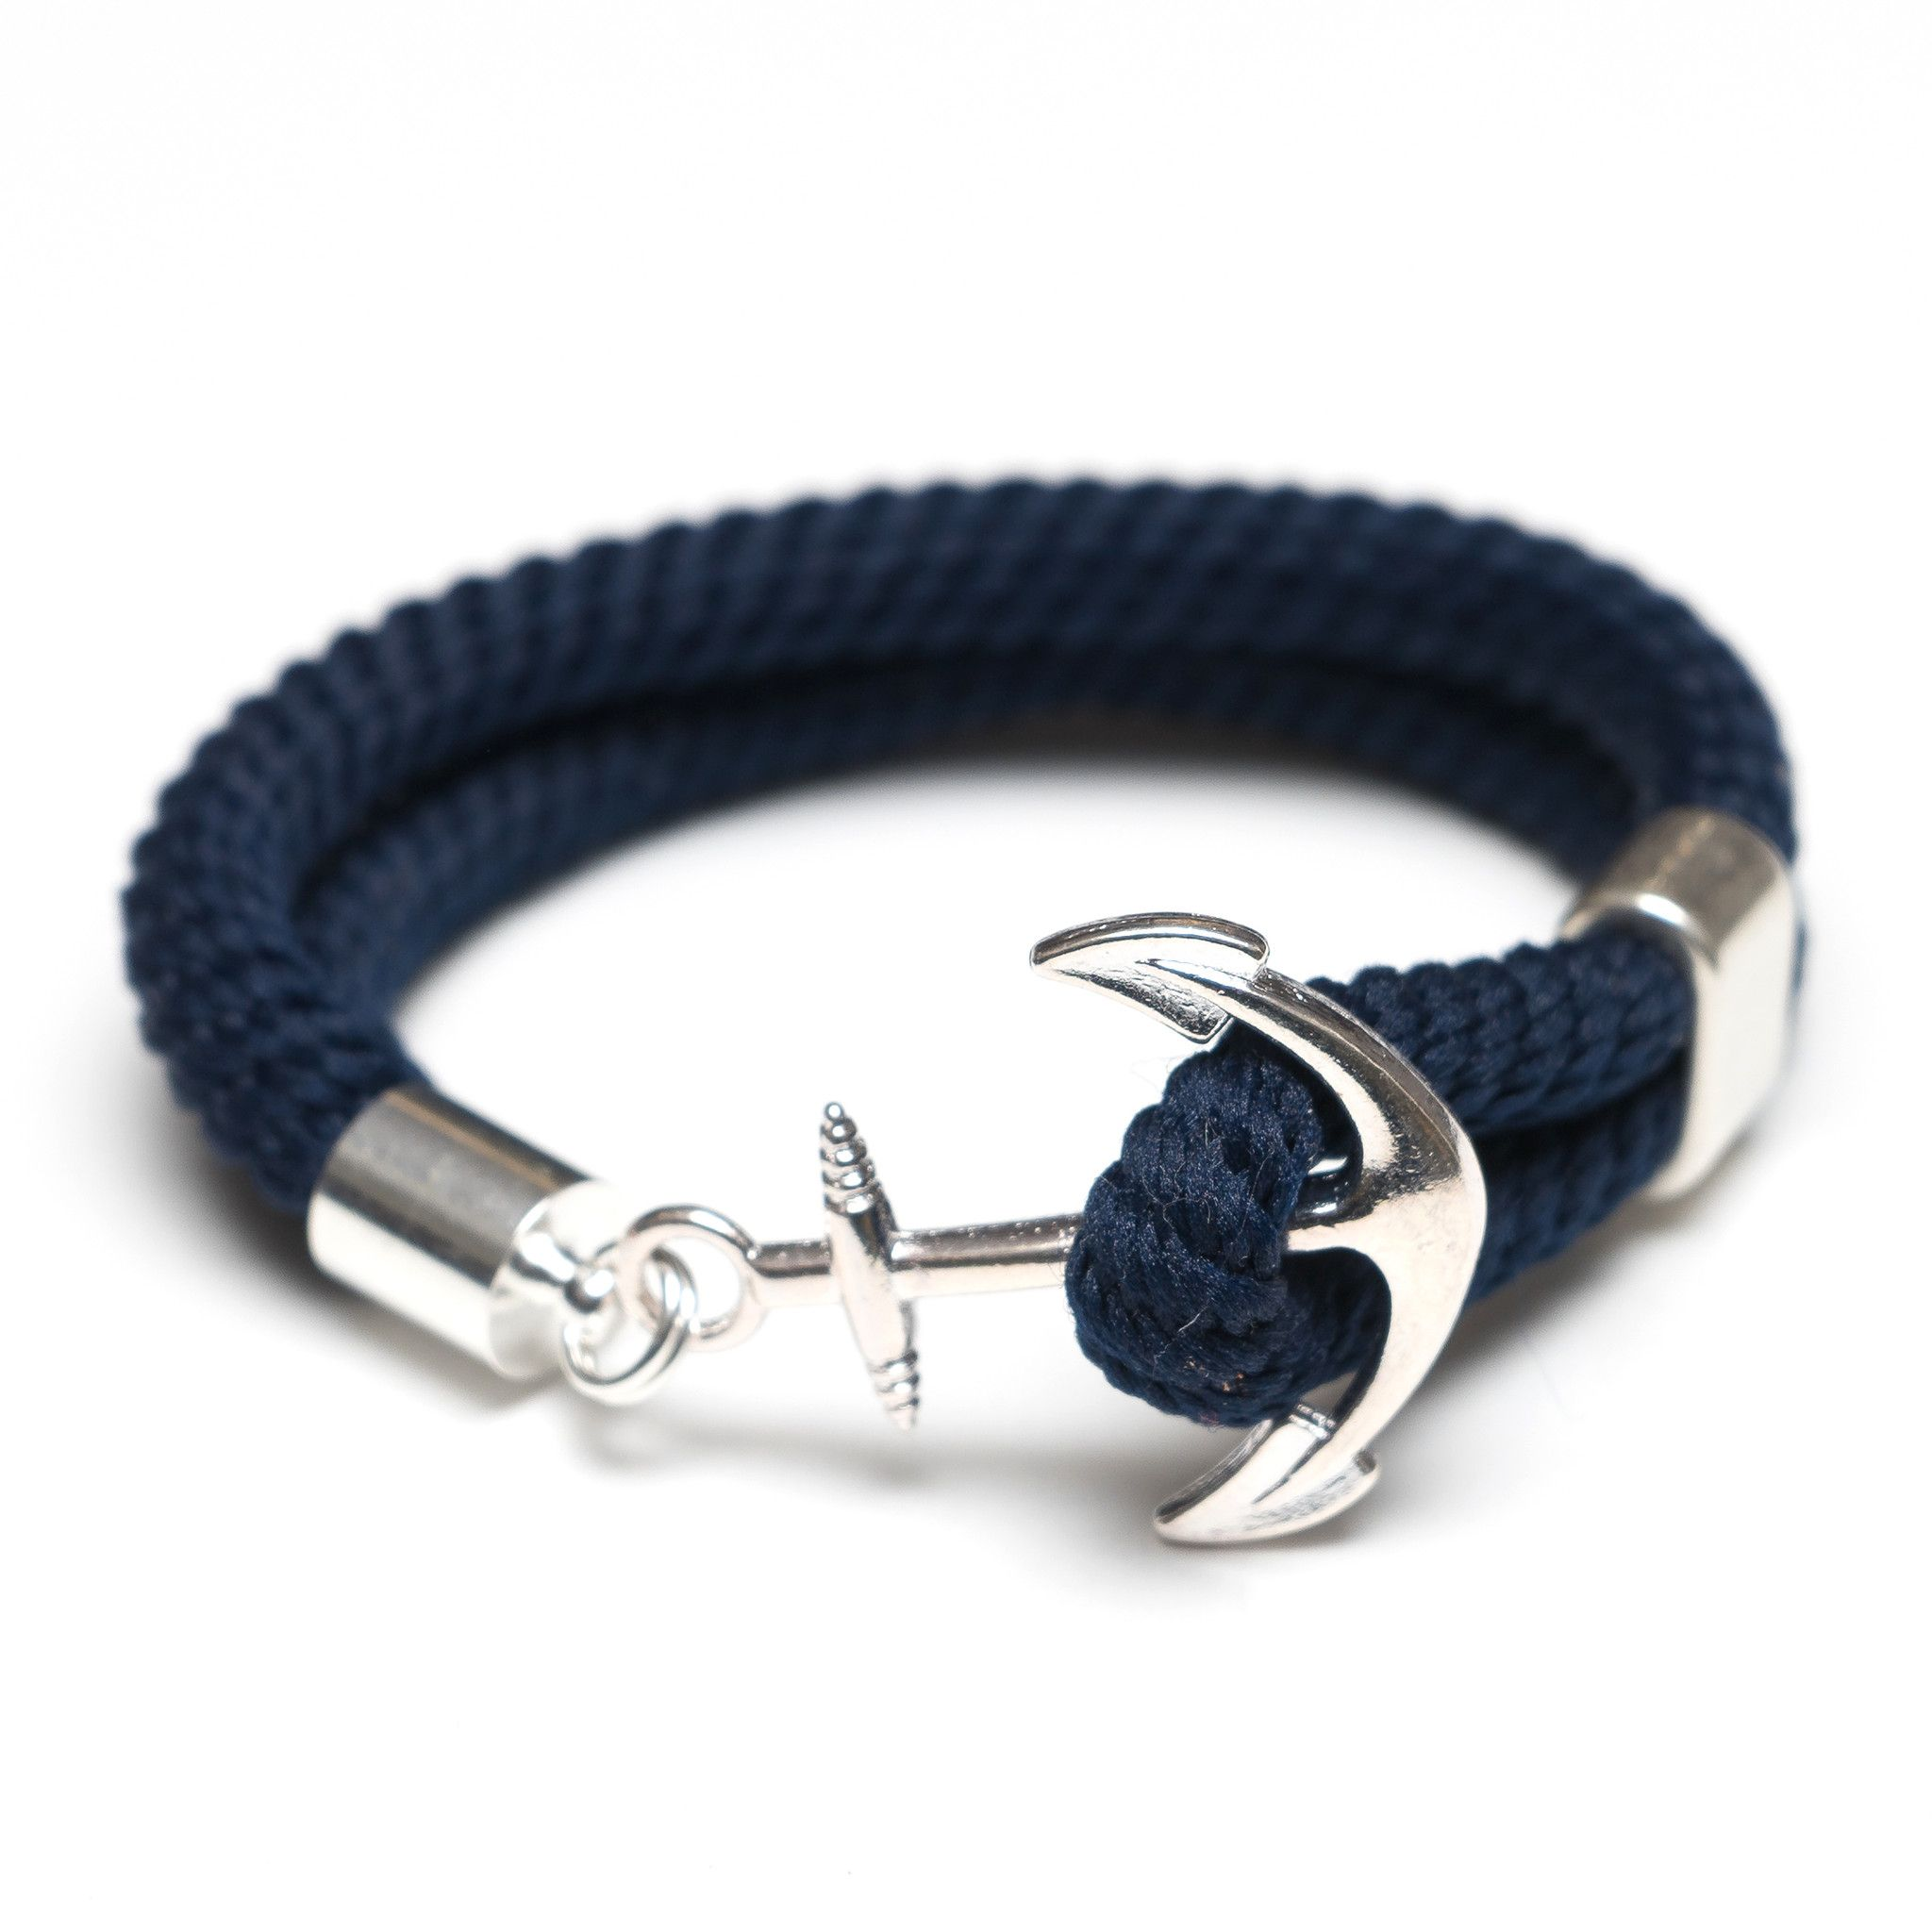 pin unisex bracelet nautical personalized sailing gemstones starboard with jewelry customized rope knot